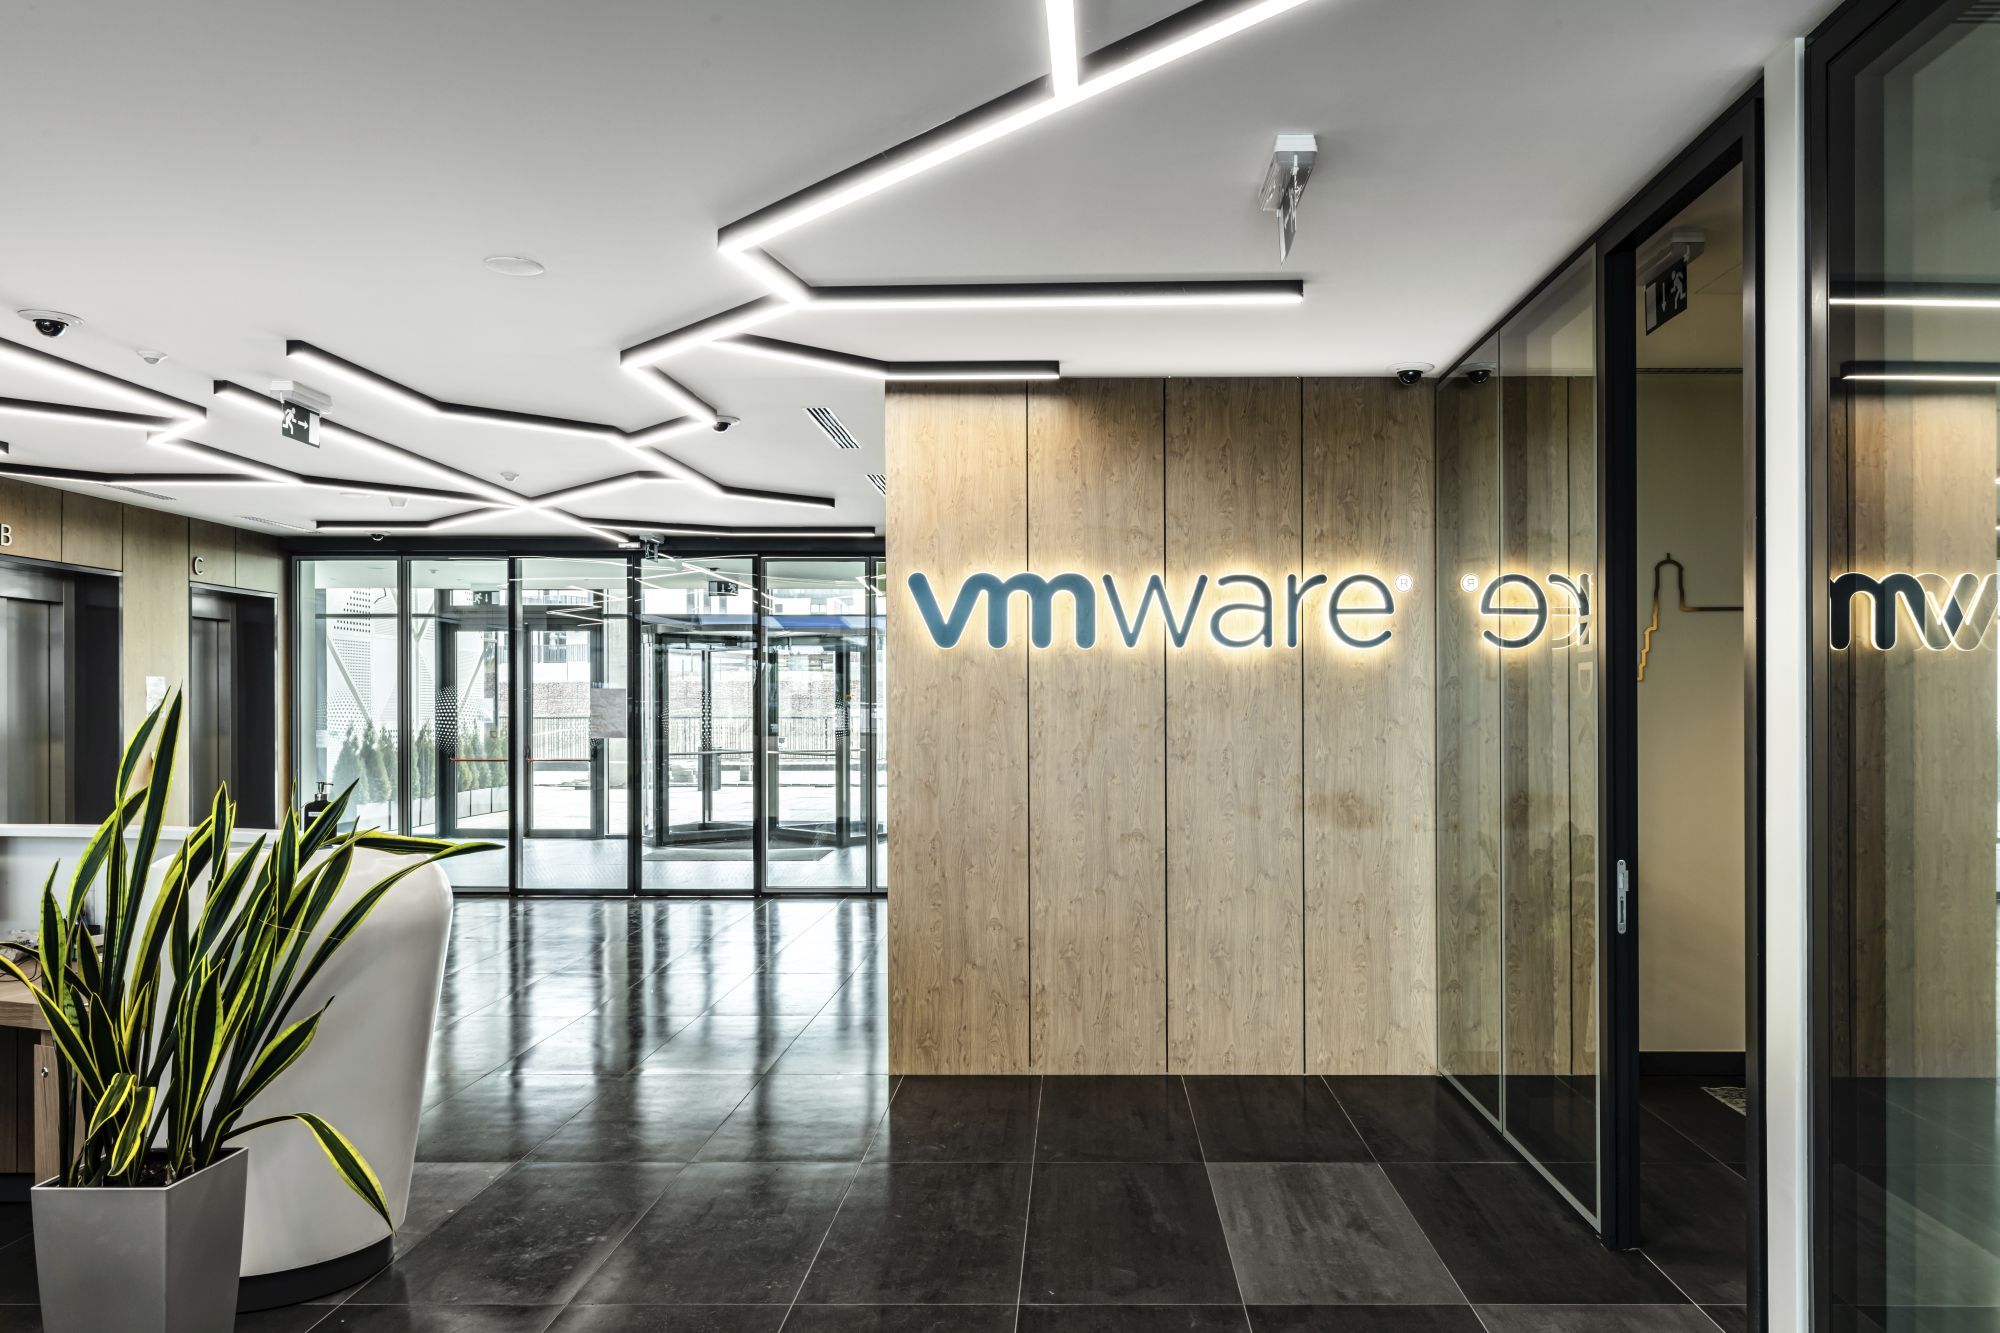 VMware office entry